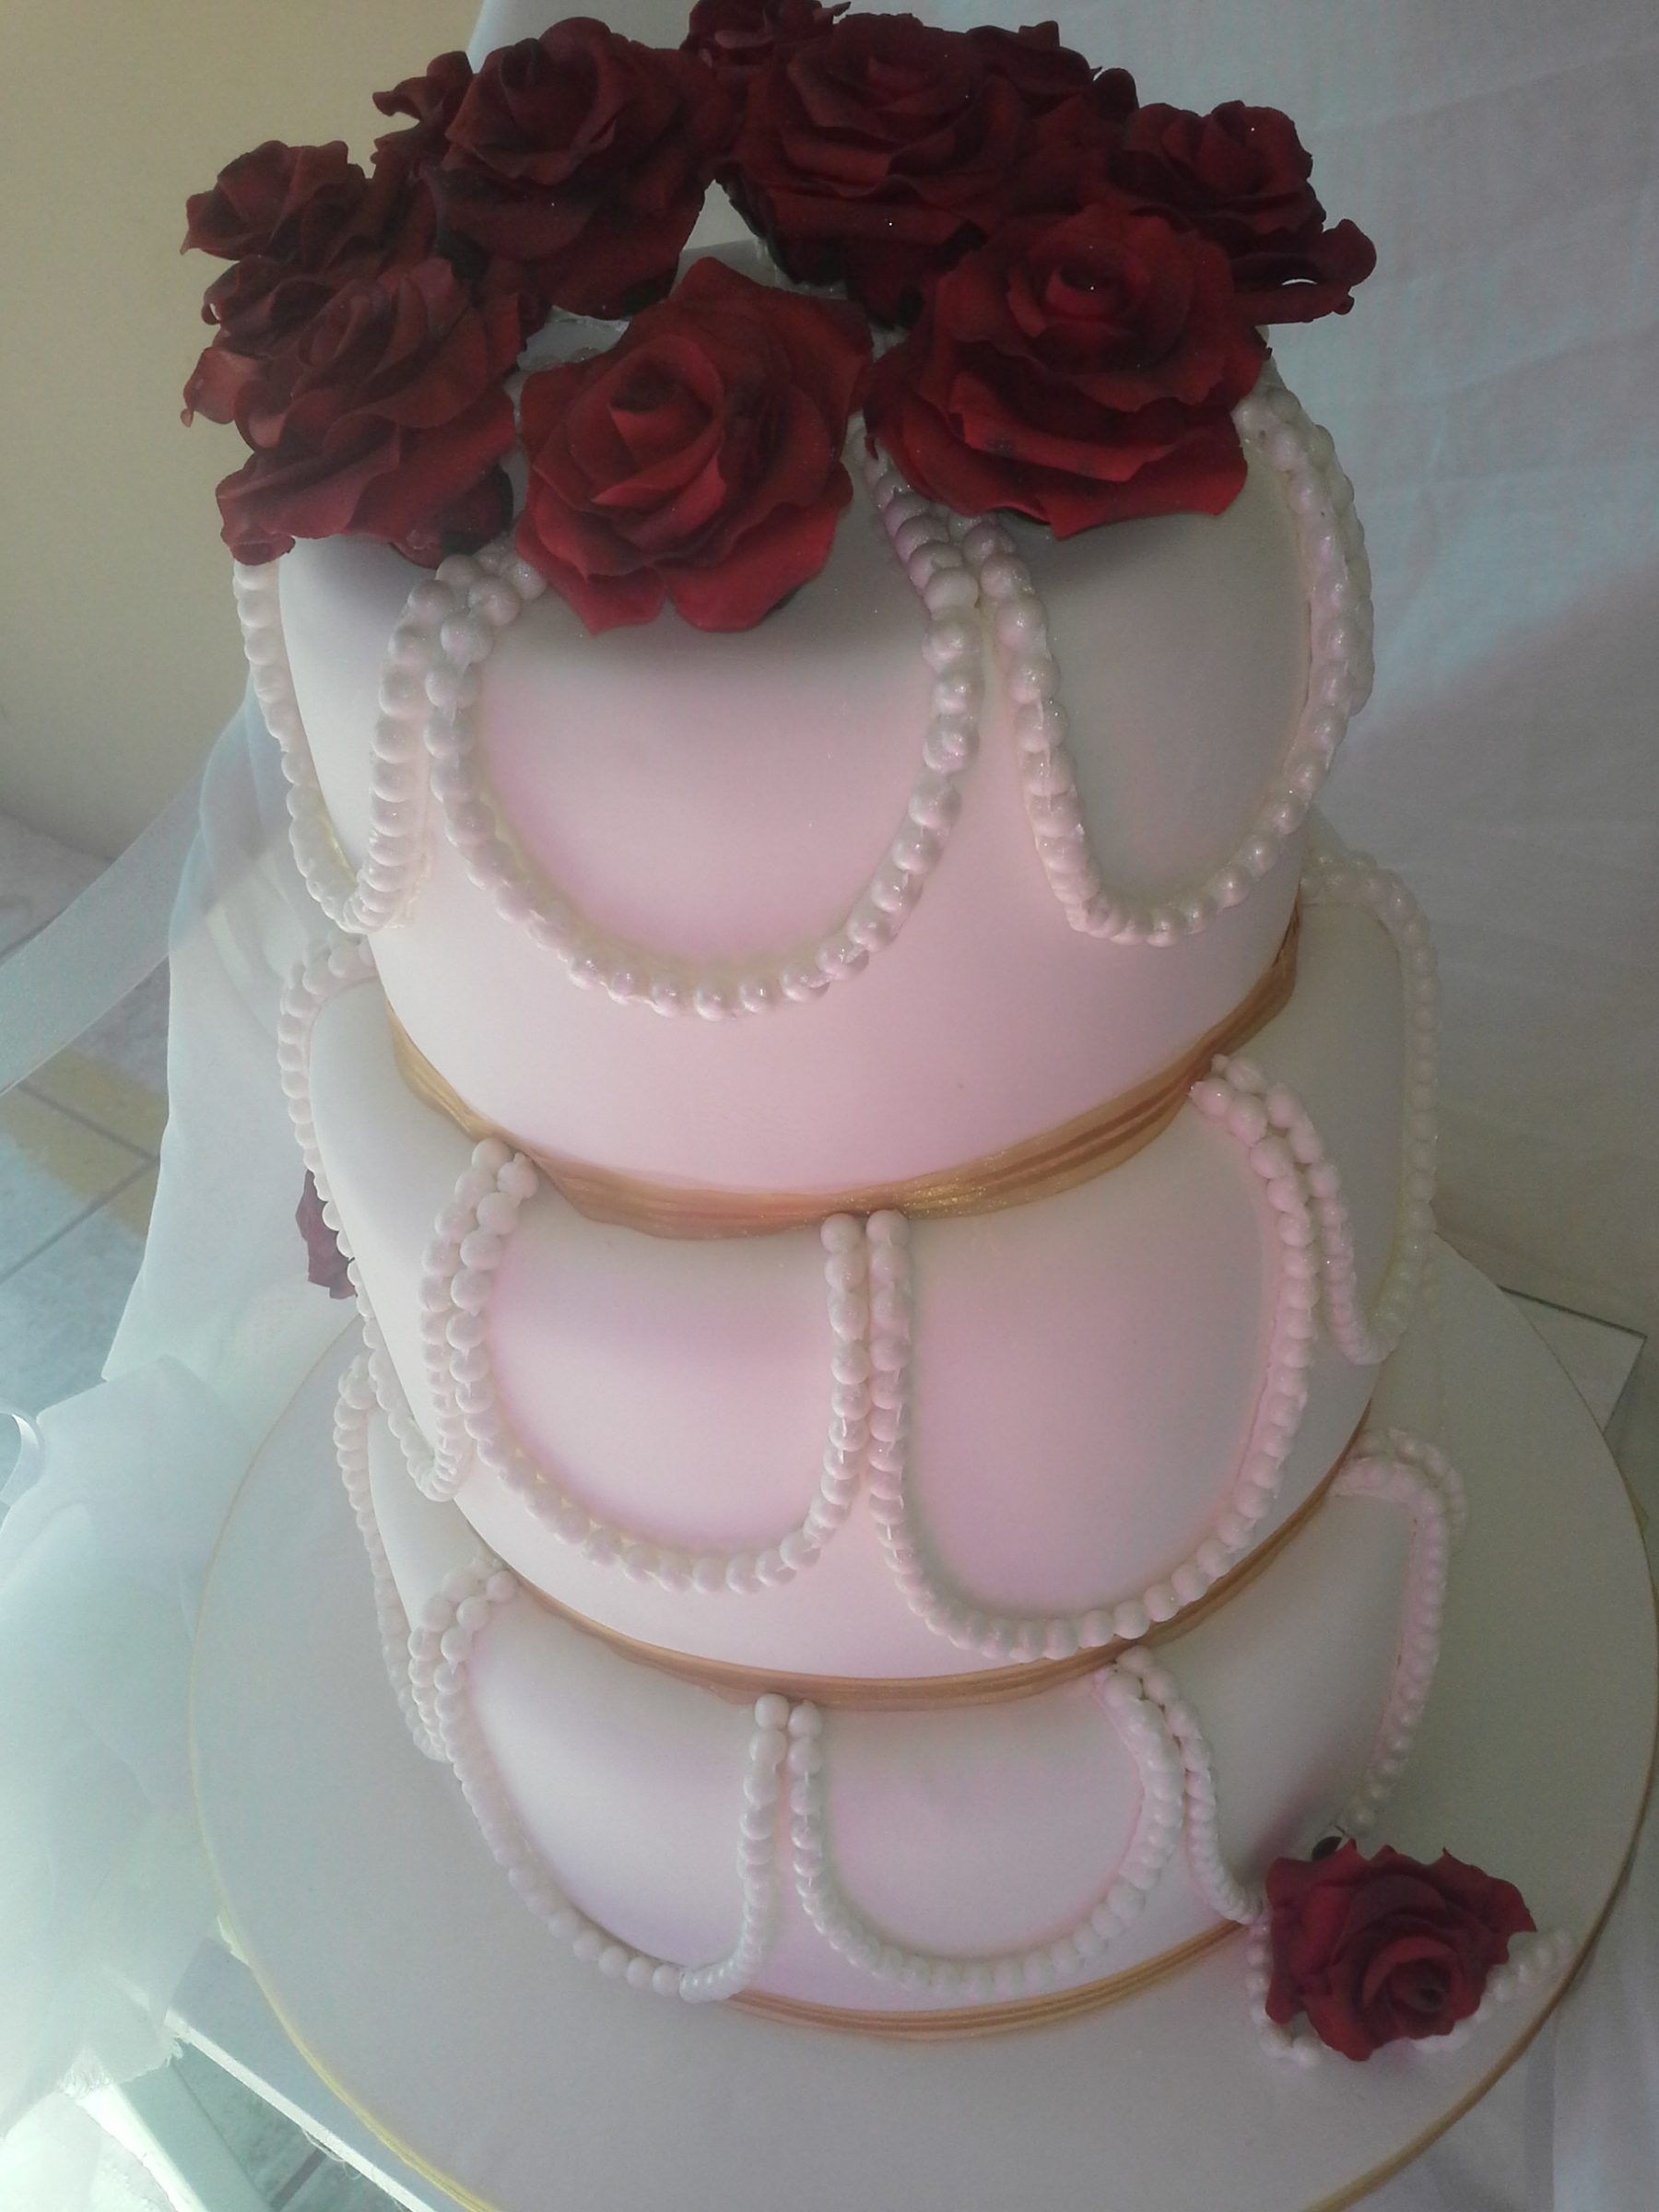 3 Tier Wedding Cakes R2500 To R4500 Baked By Nataleen